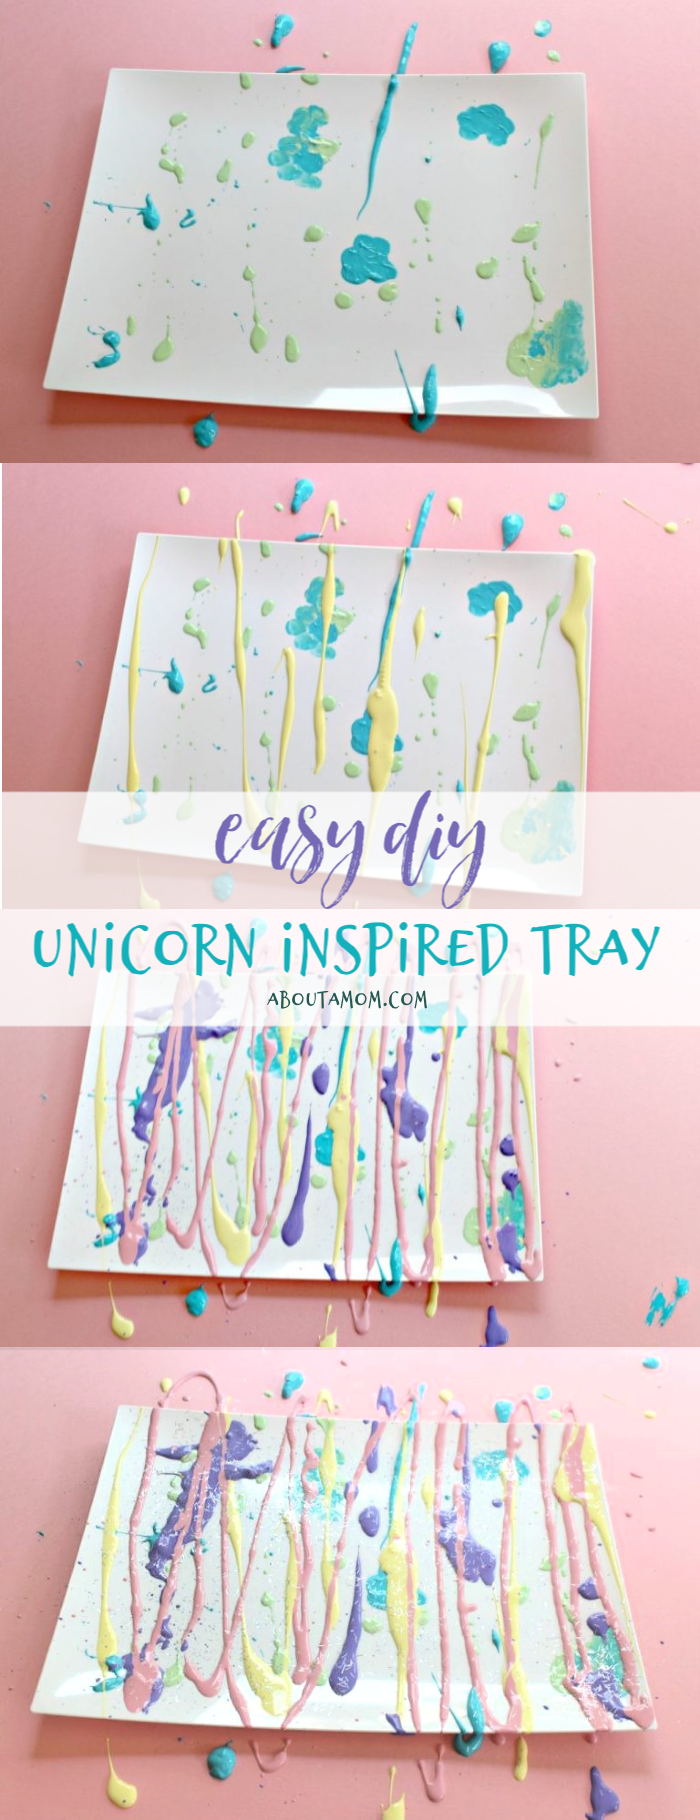 An easy diy unicorn inspired trinket tray. Unicorns are special and beautiful and magical and that is why they caught on as a huge trend in our culture. I wanted to make something themed as unicorns and decided to use the colors and glitter to create a tray that I can put fun and  pretty things on at home. With only a few inexpensive supplies, you can recreate this DIY craft and make one for yourself or as a gift for a friend.